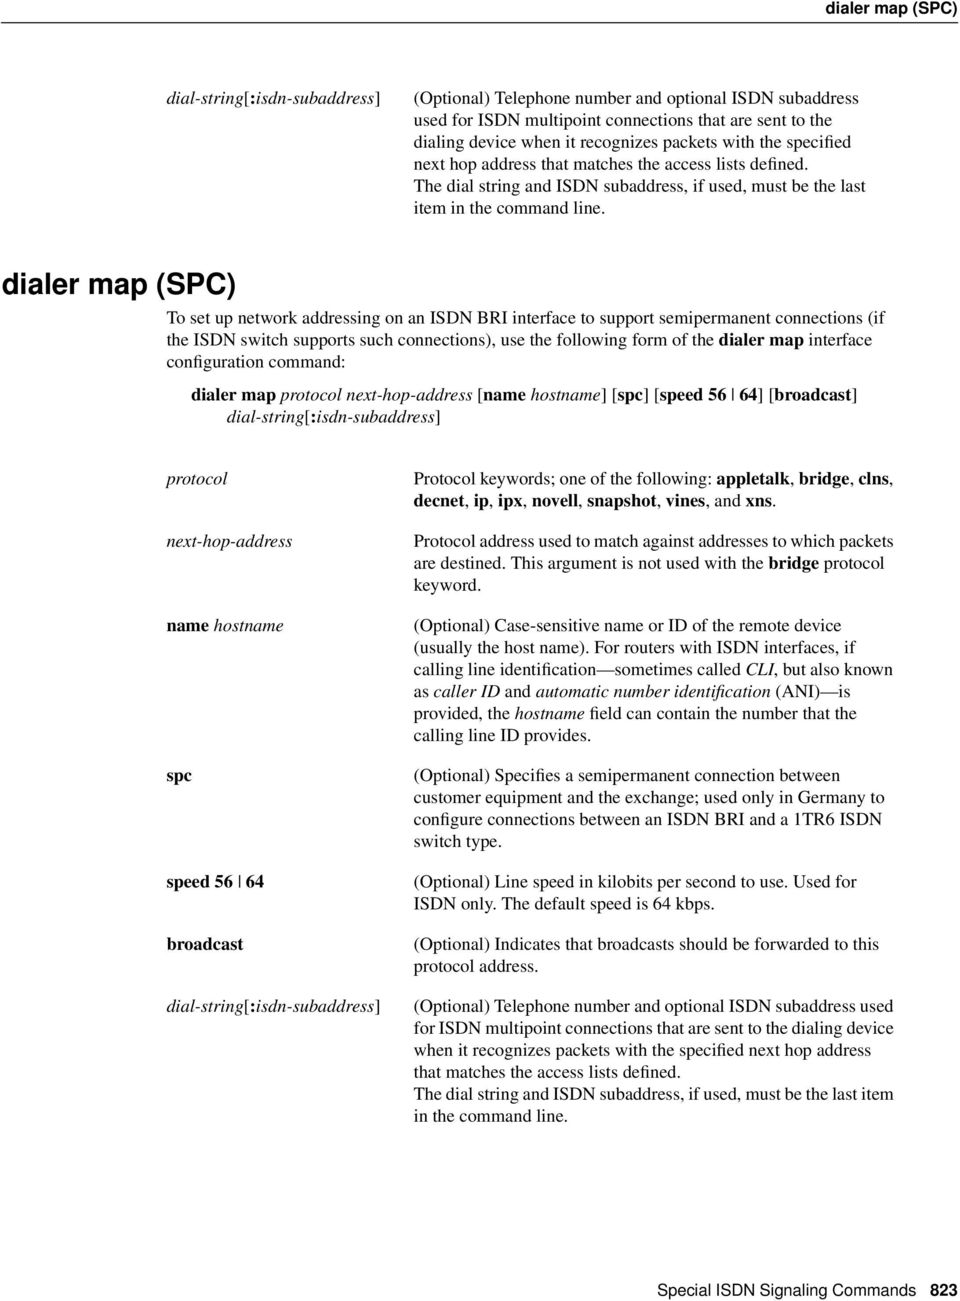 dialer map (SPC) To set up network addressing on an ISDN BRI interface to support semipermanent connections (if the ISDN switch supports such connections), use the following form of the dialer map